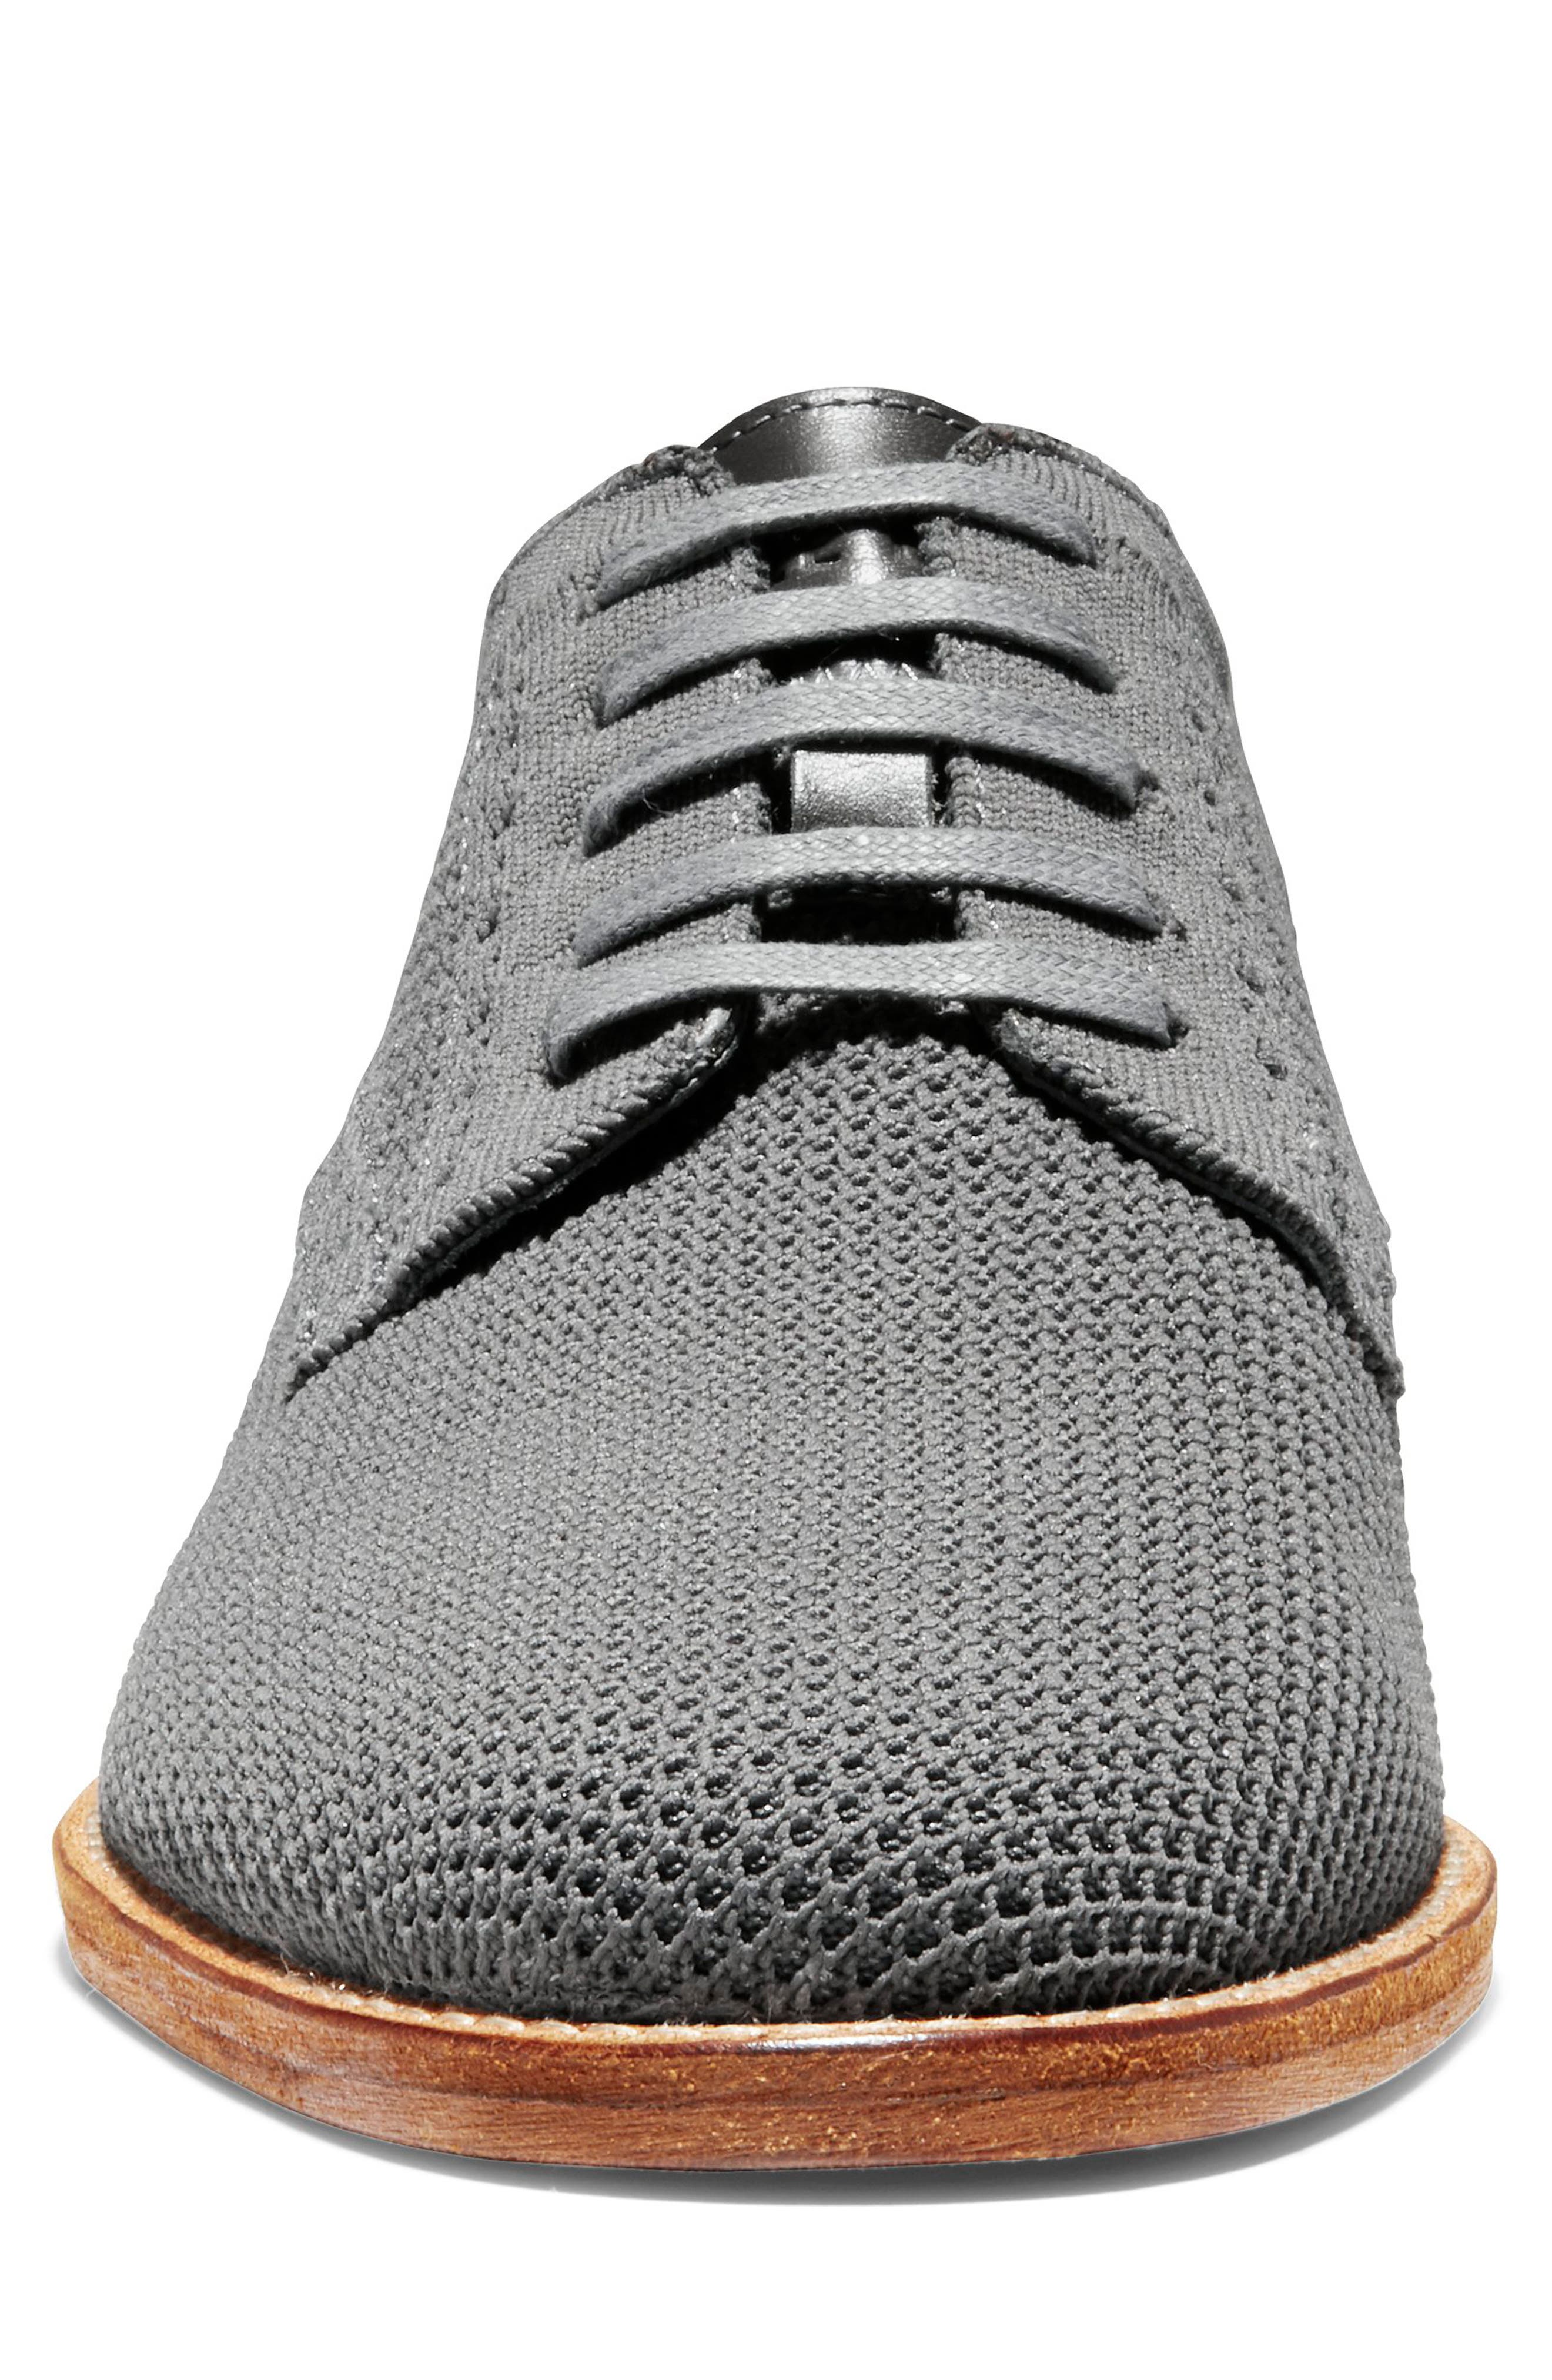 COLE HAAN, Feathercraft Grand Stitchlite Plain Toe Derby, Alternate thumbnail 4, color, MAGNET KNIT